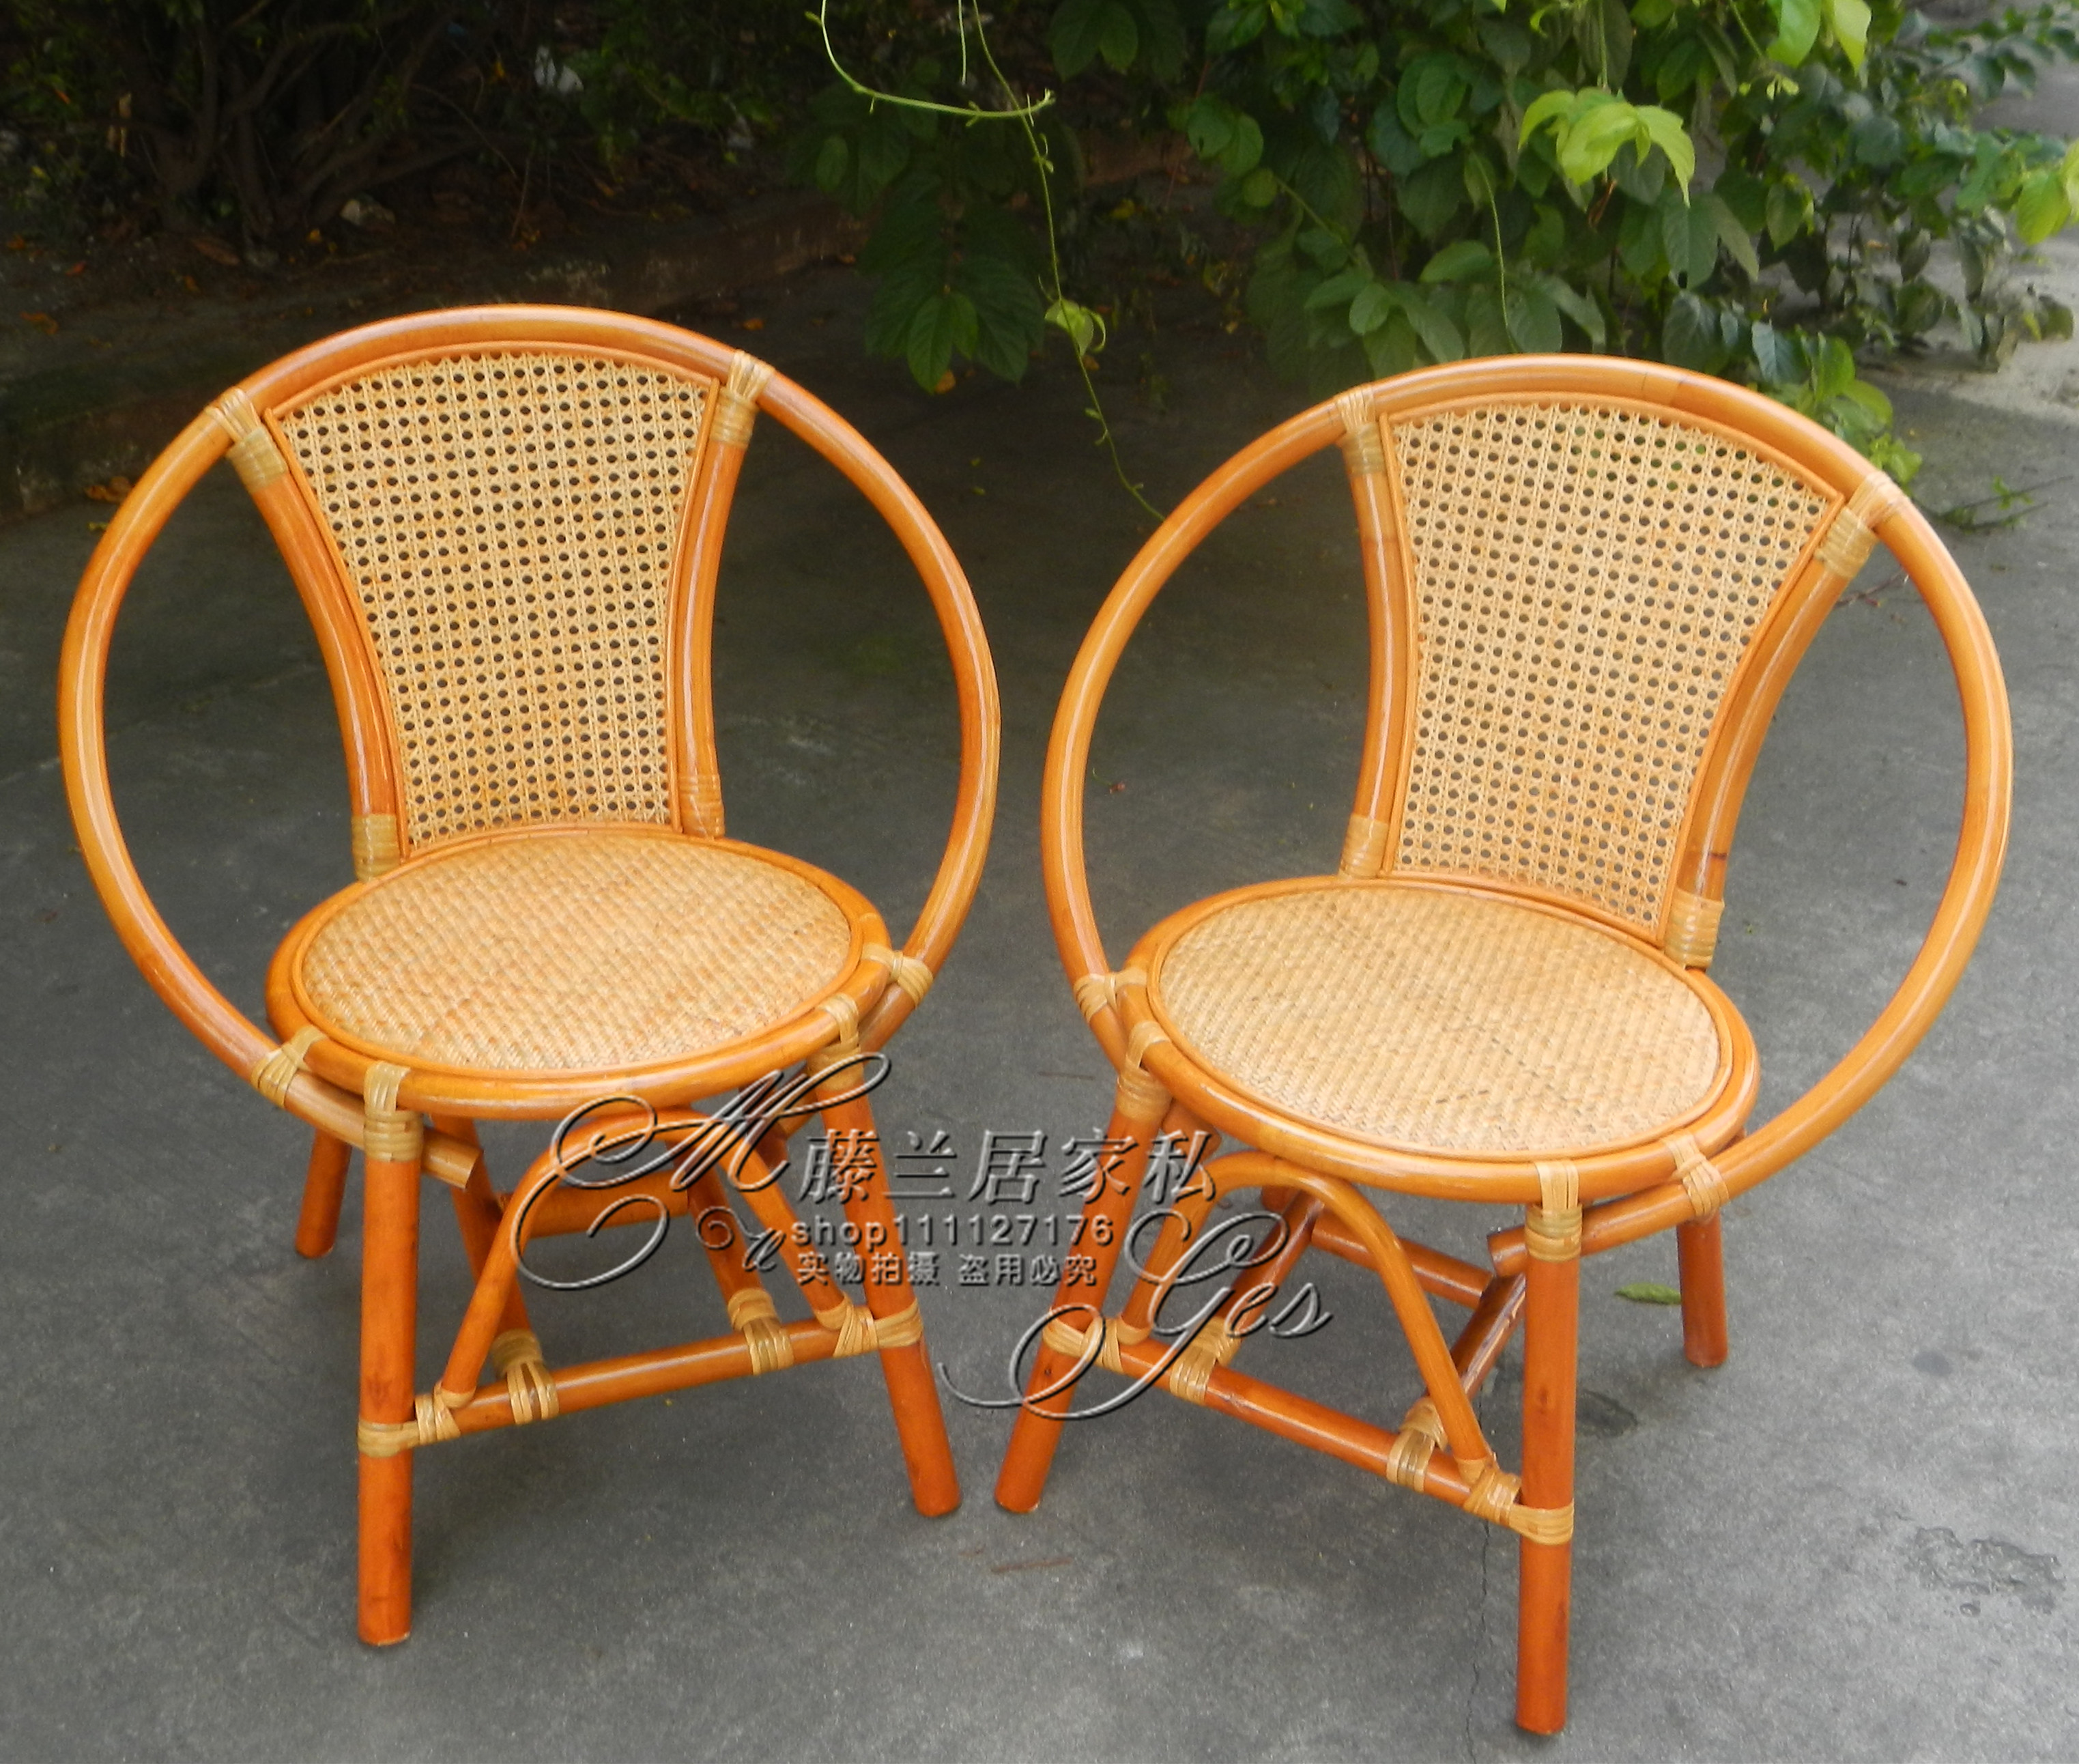 Chair Chair To Sweeney Rattan Chair Armrest Chair Small Balcony Chair  Backrest Chair When The Chair For Children